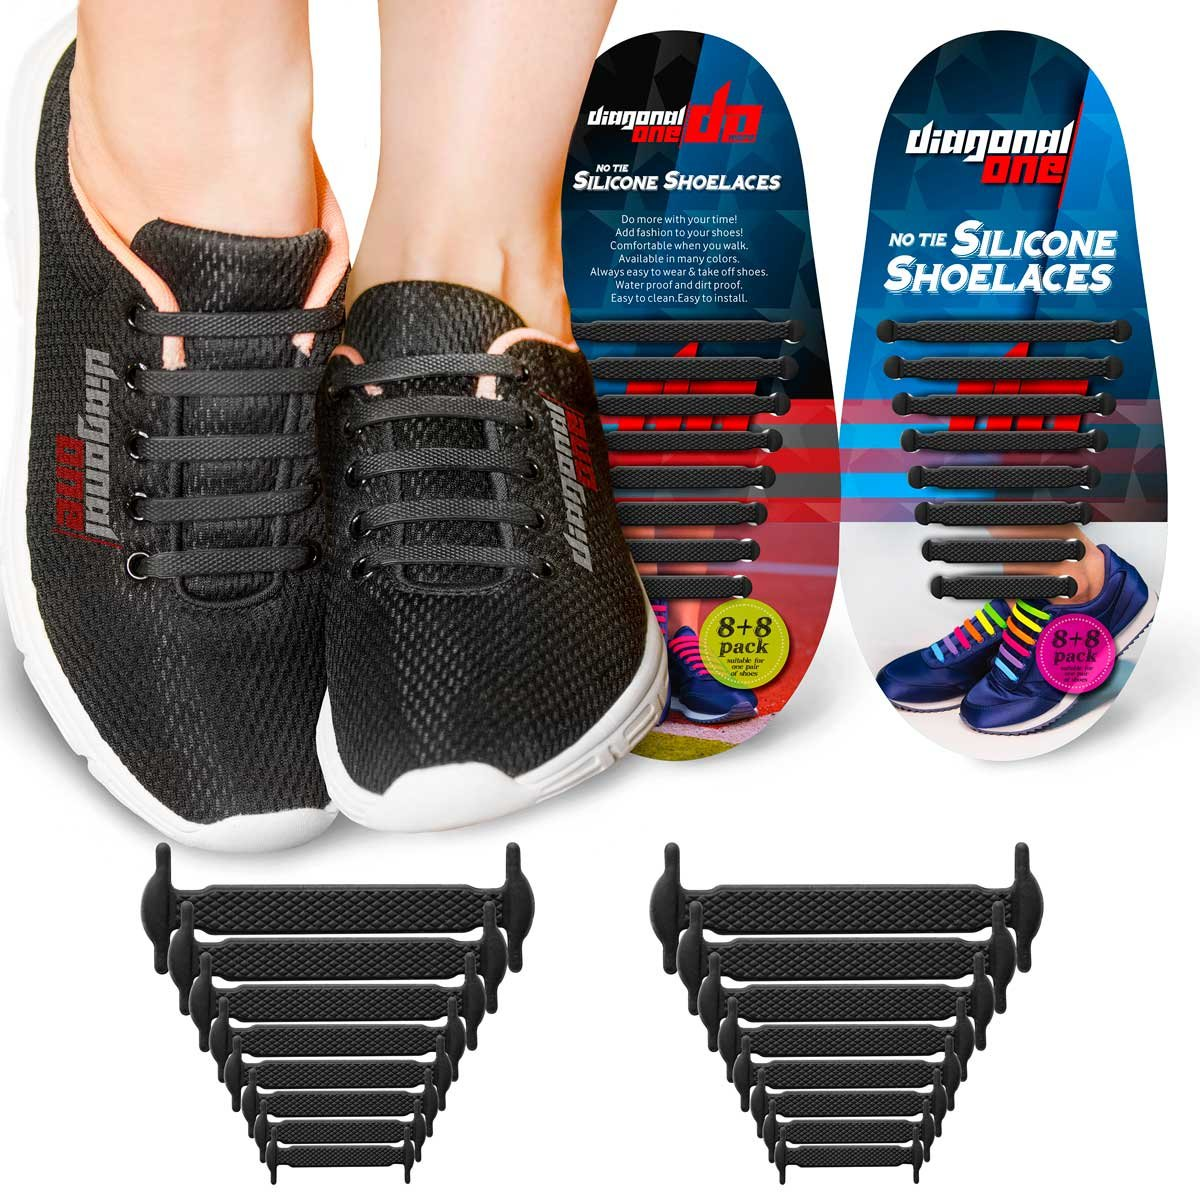 185844e7924 Get Quotations · Diagonal One No Tie Shoelaces for Kids   Adults. THE  Elastic Silicone Shoe Laces to